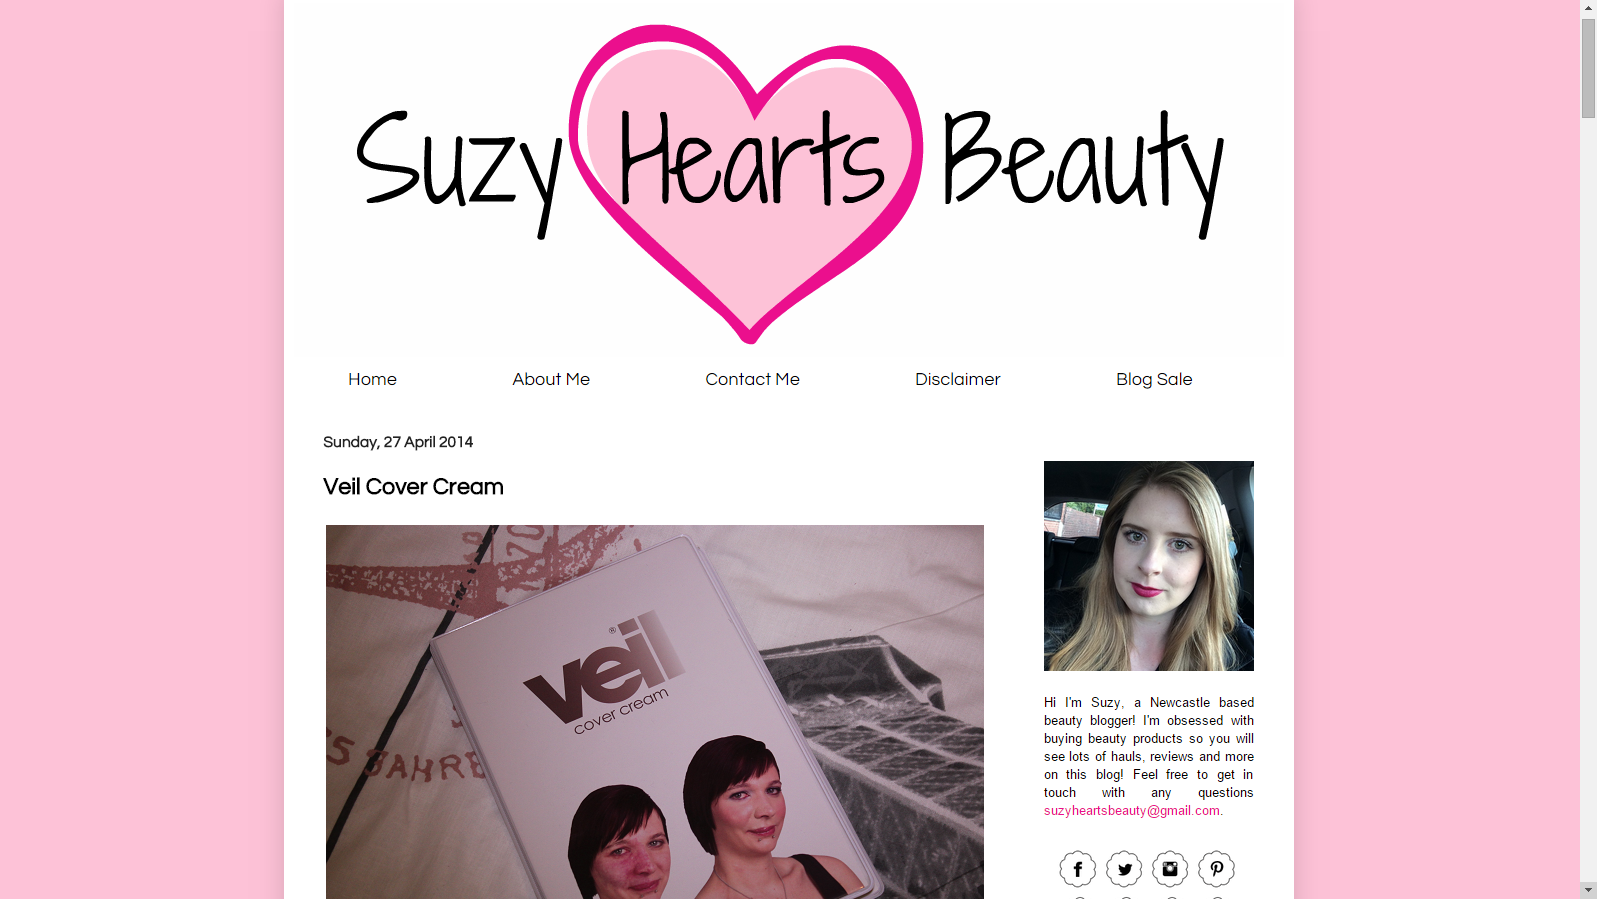 Blast From The Past: The Original Veil Demonstration Kit Featured On Suzy Hearts Beauty